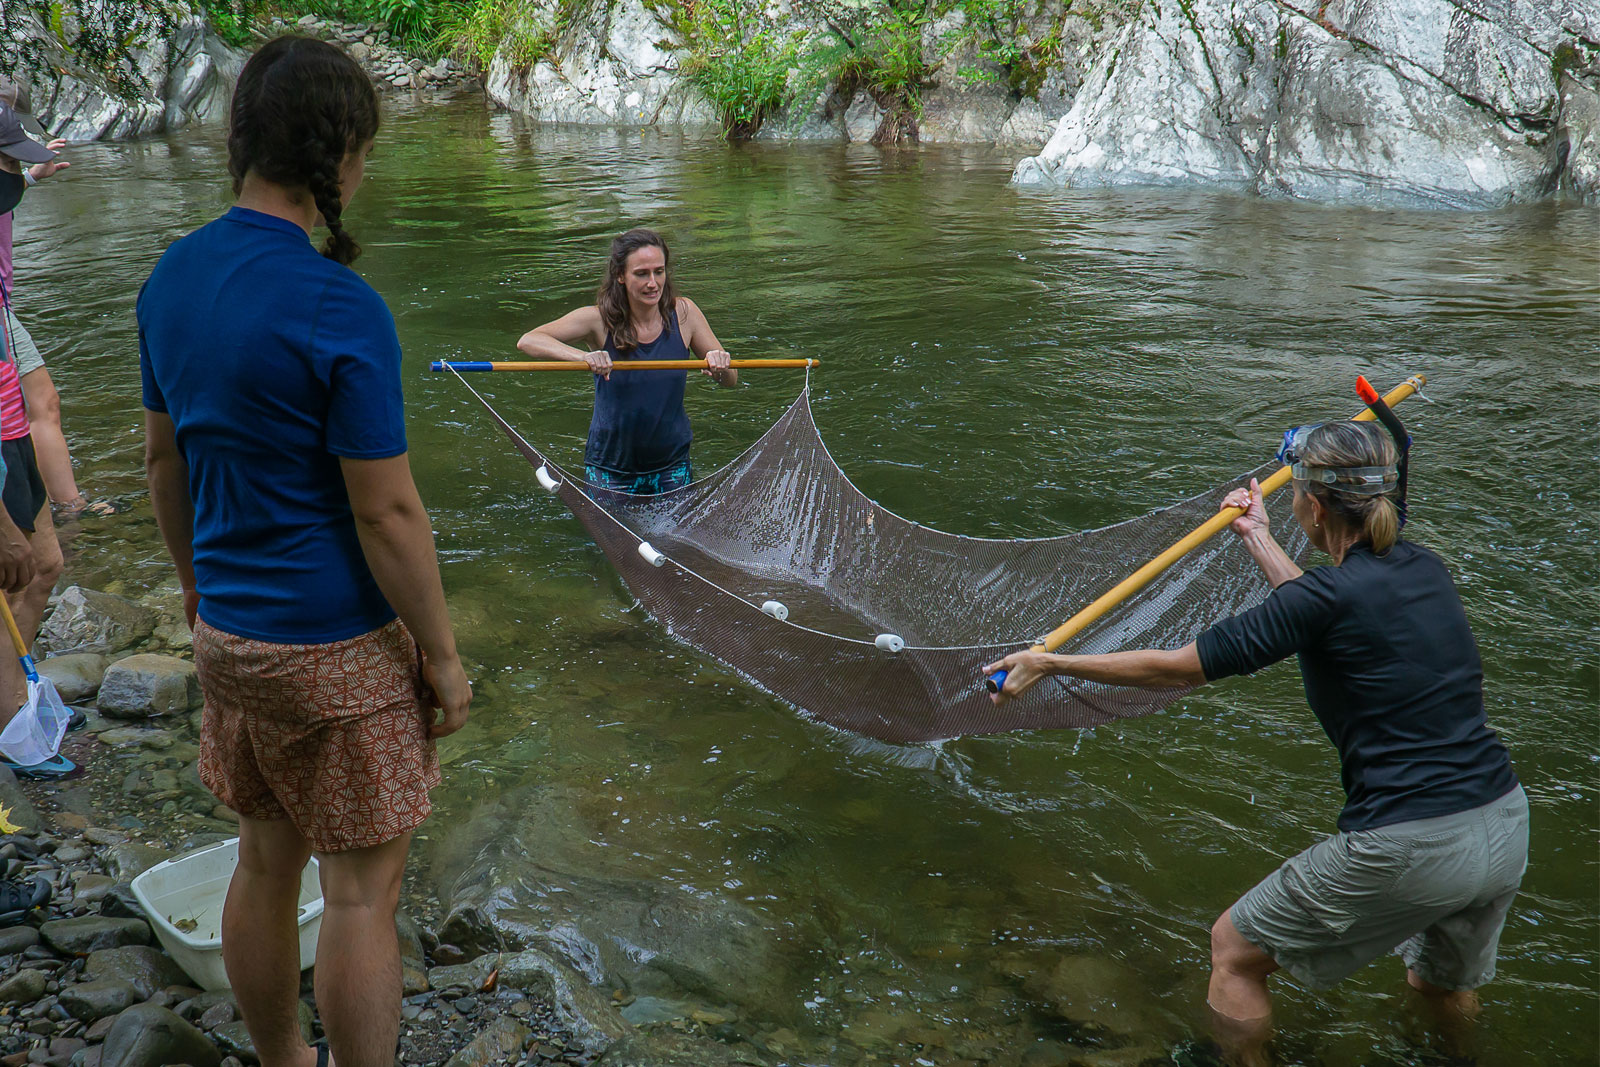 Students in the naturalist certification program study life in the streams of the Smokies